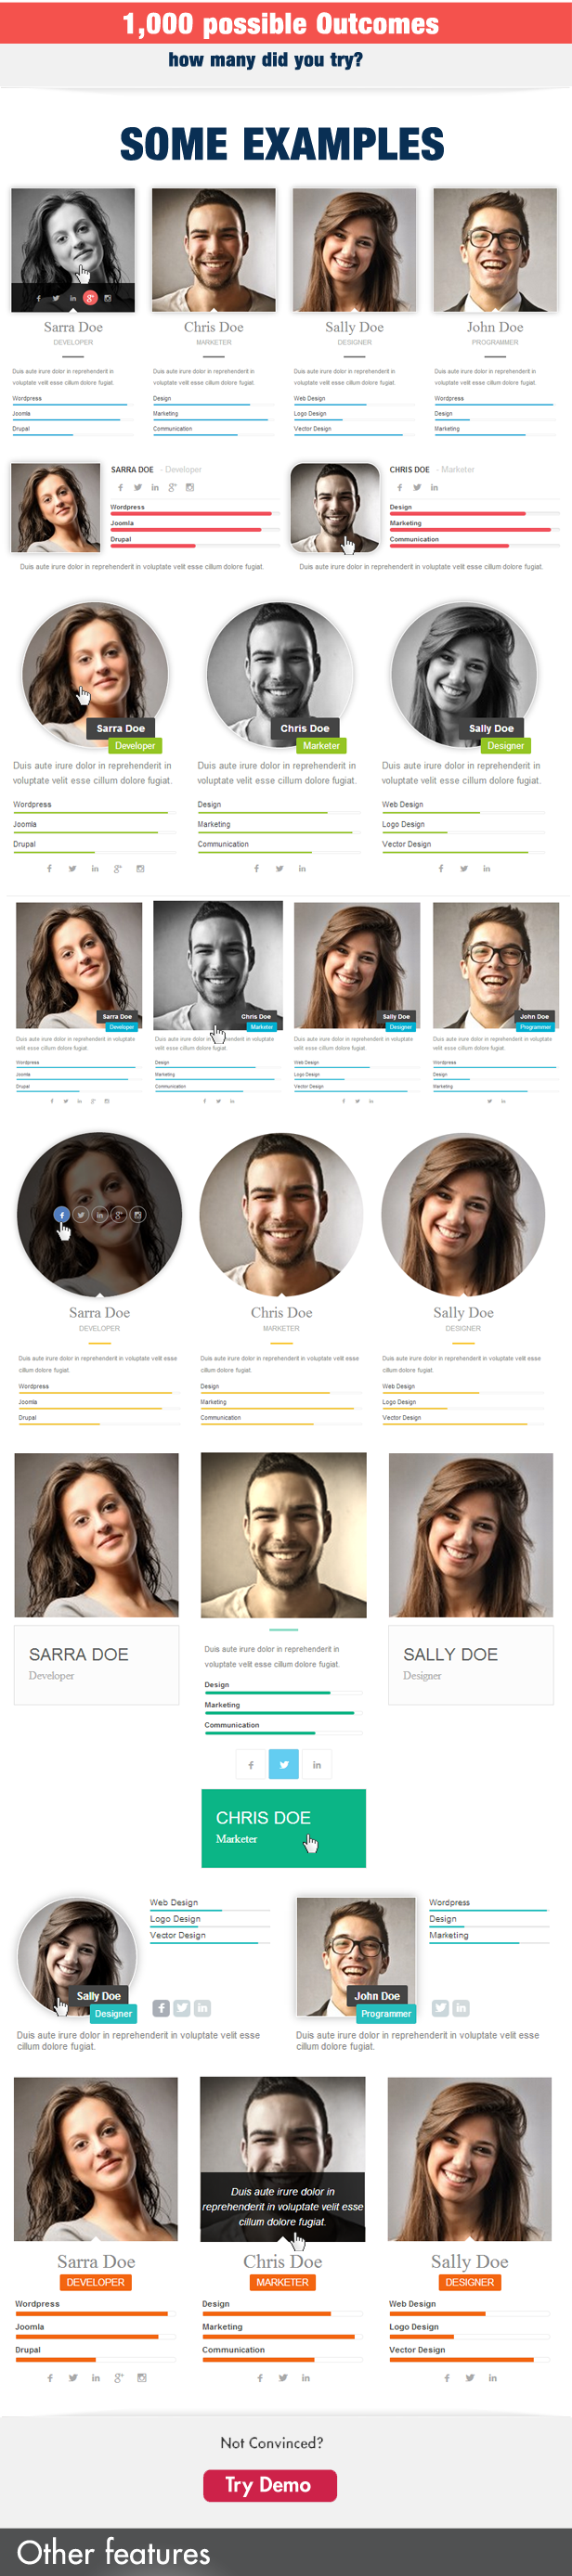 Team Showcase for Visual Composer WordPress Plugin - 4